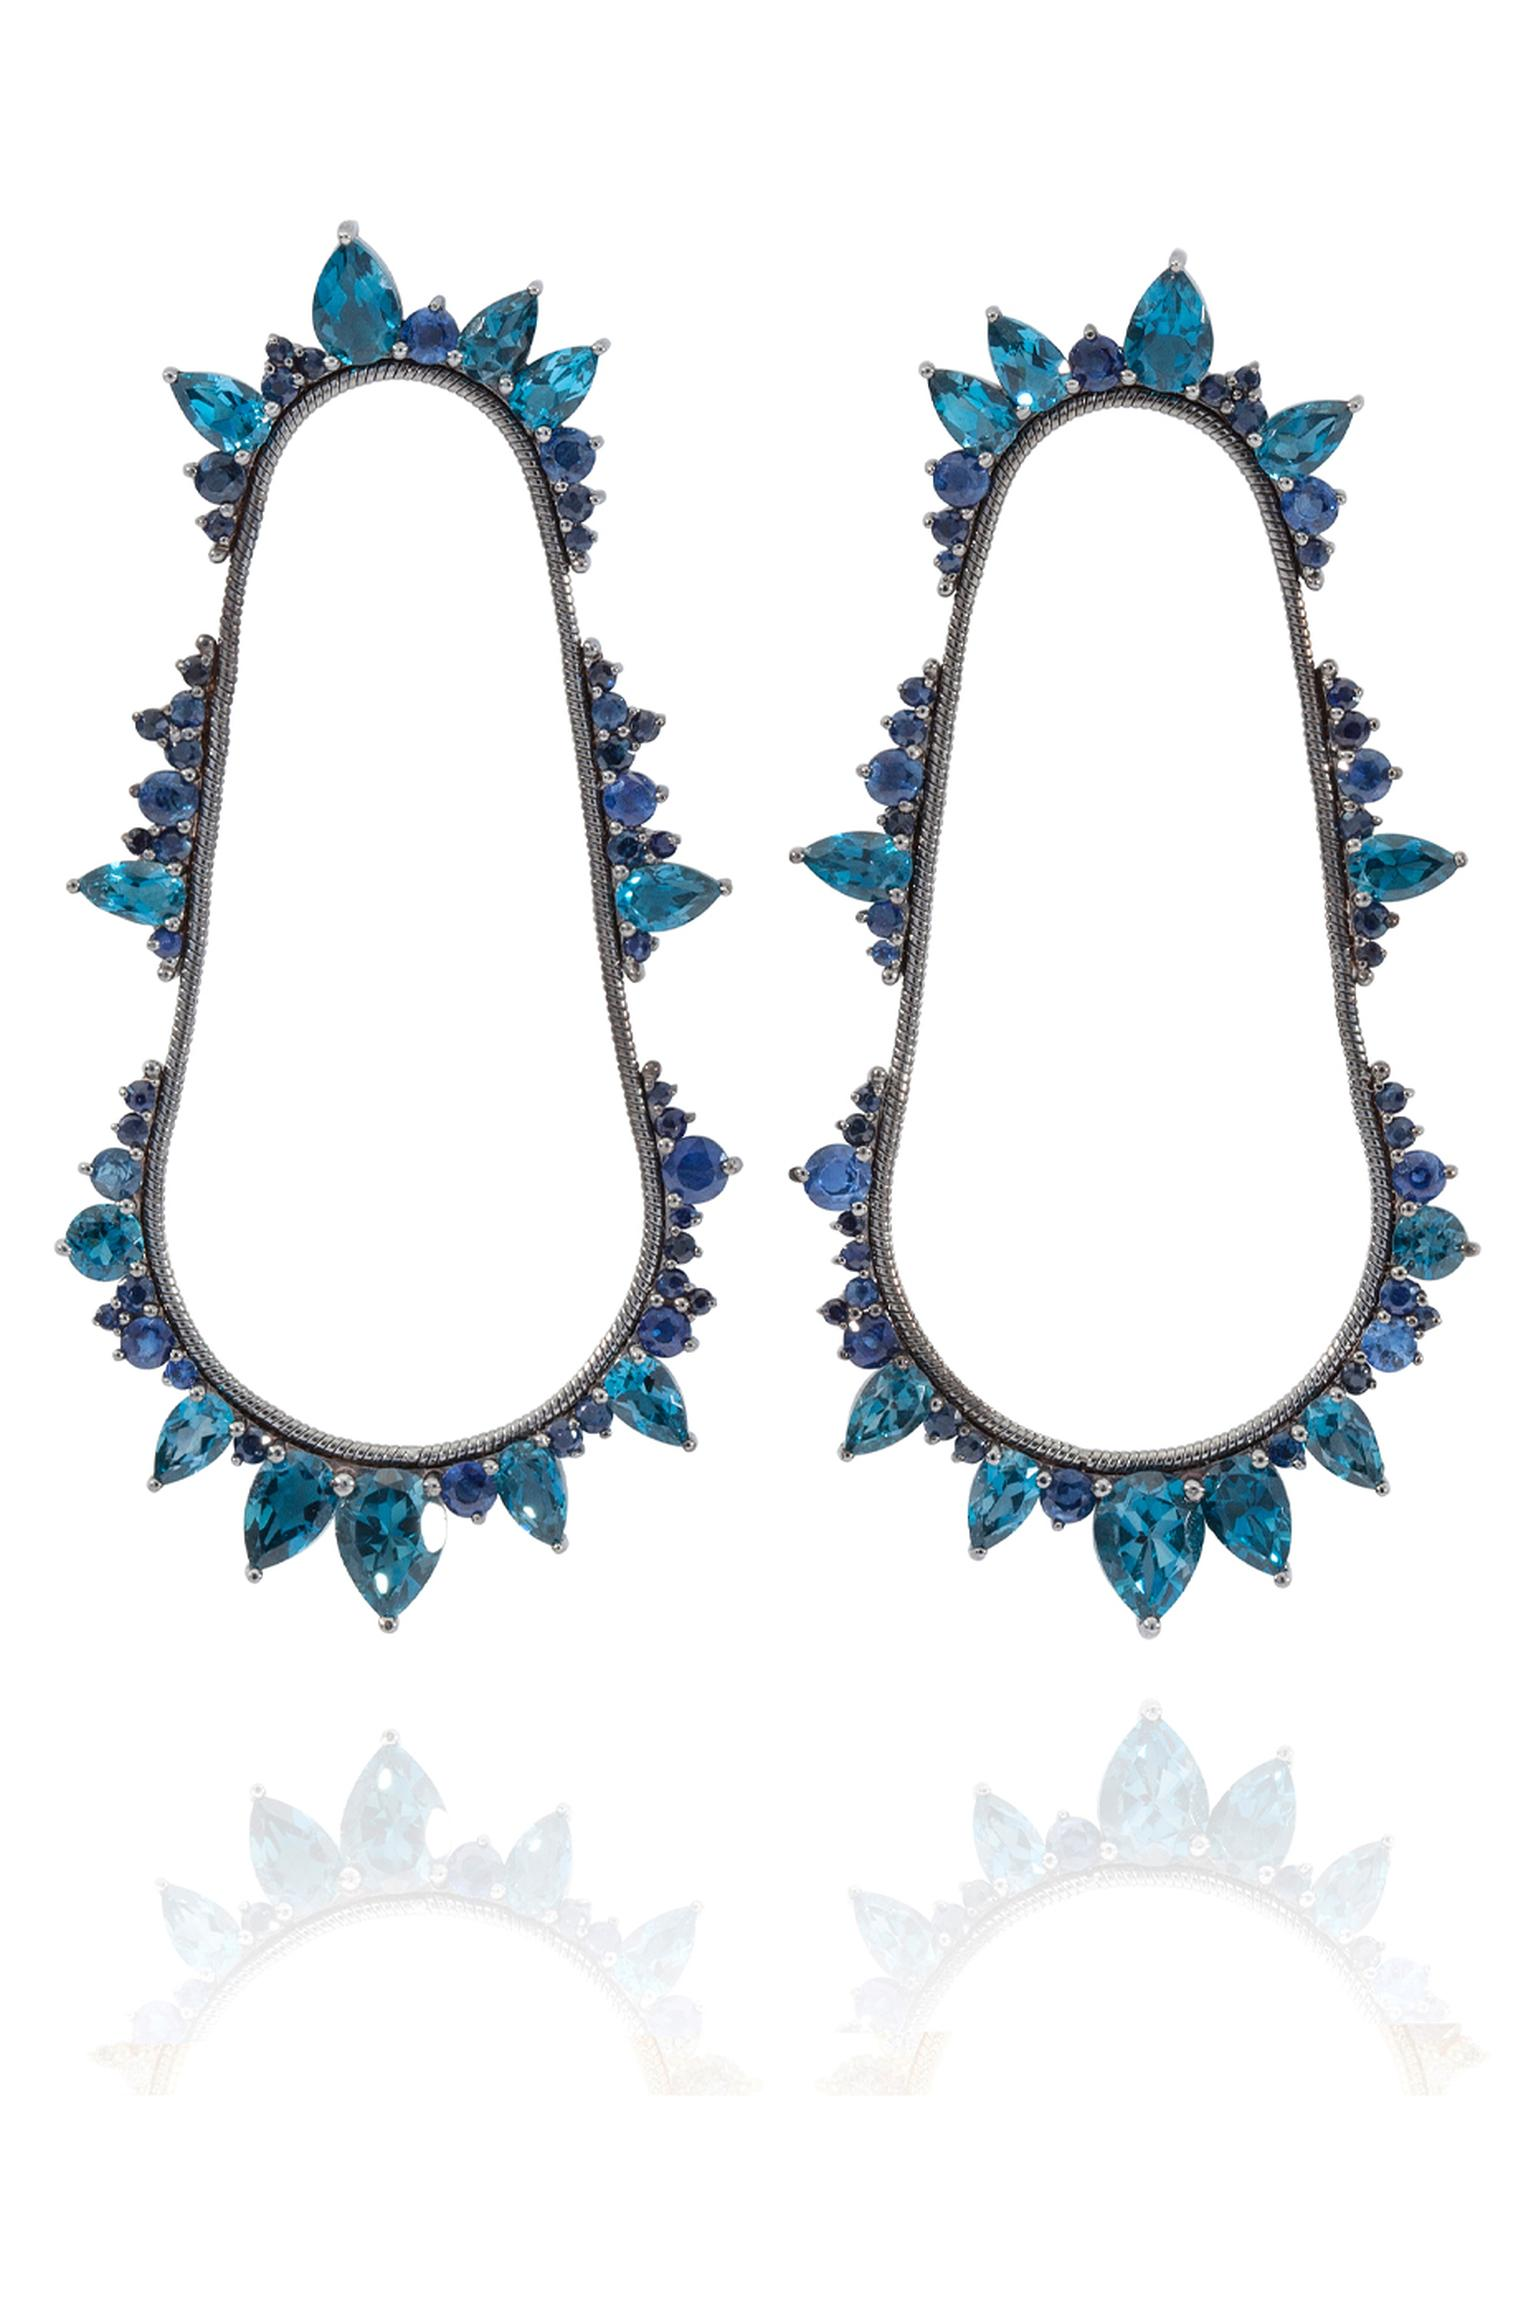 Fernando Jorge London Blue topaz earrings with sapphires in black rhodium-plated gold, from the Electric Cycle collection. Available at matchesfashion.com (£6,000).